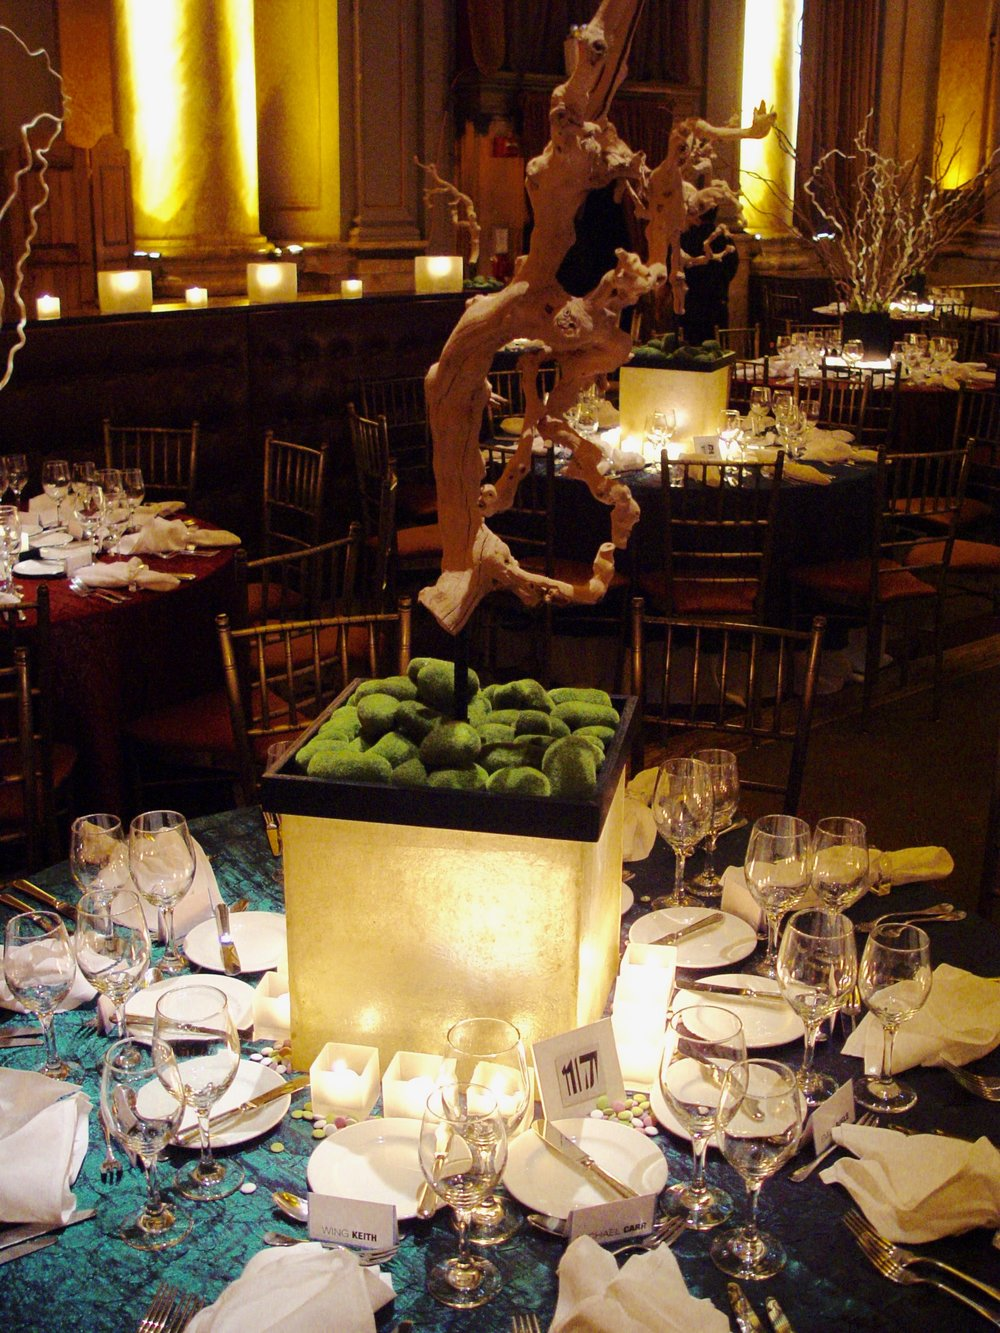 NJ+centerpieces+rental+decor+design+event+gala+fundraiser+auction+rentals.jpeg